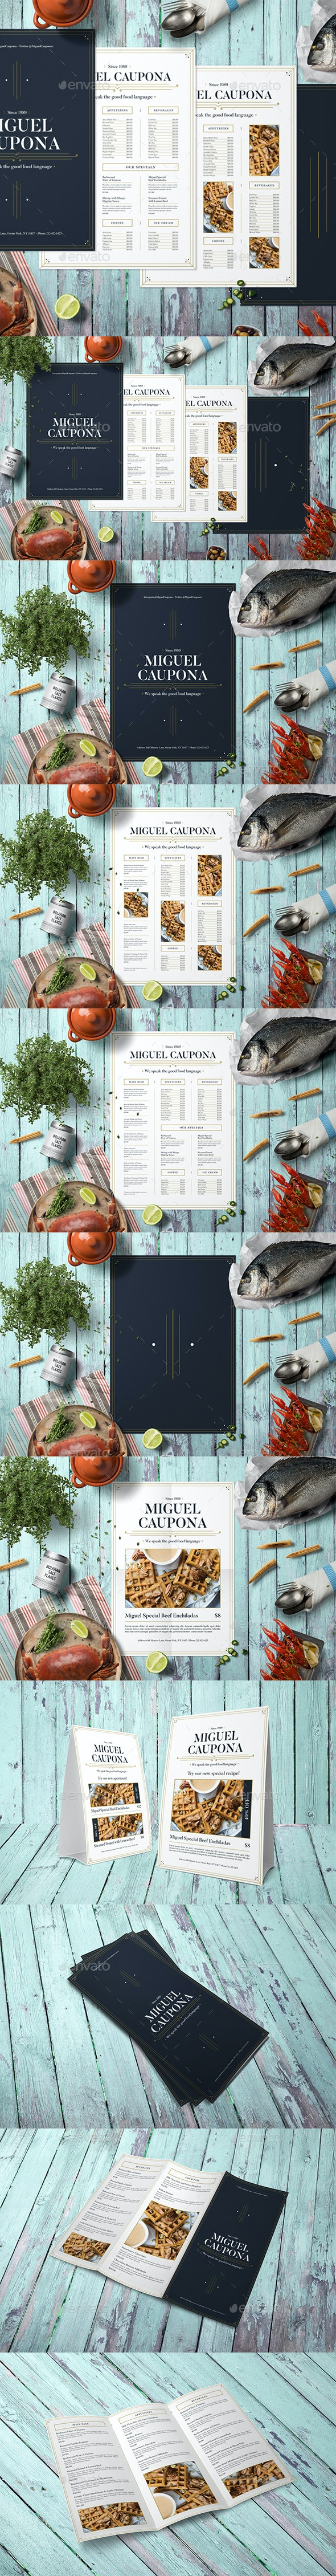 Complete Restaurant Menu Bundle - Food Menus Print Templates